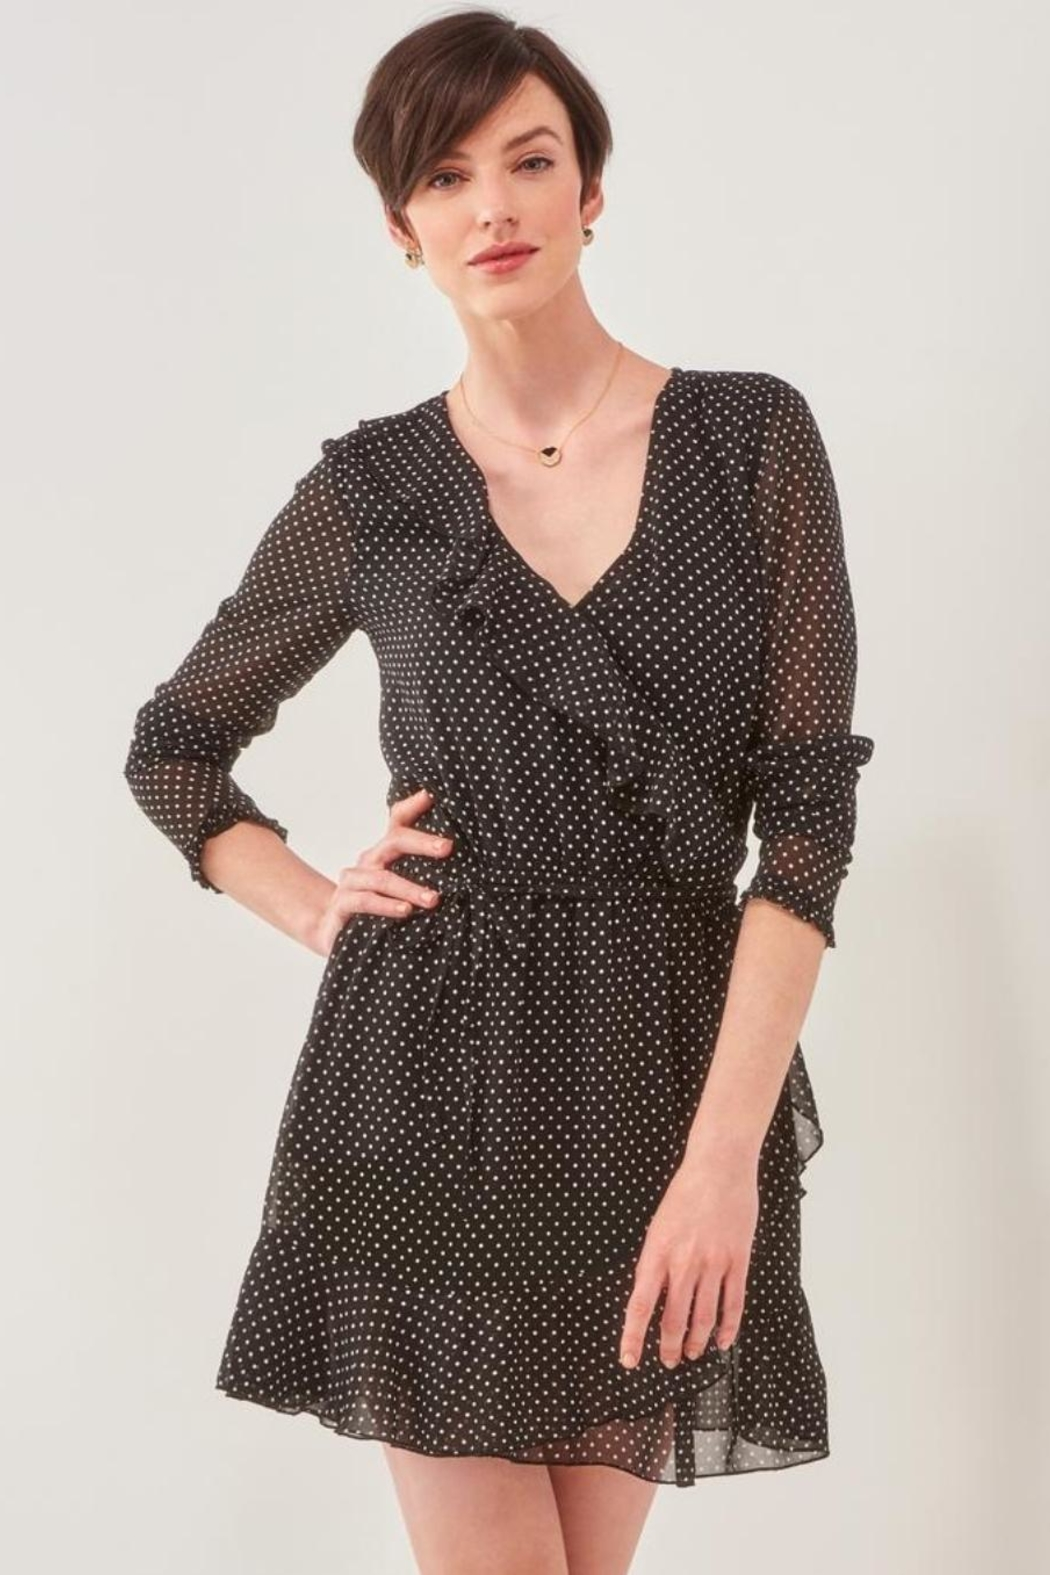 Charlie Paige Perfect Polka-Dot Dress - Main Image